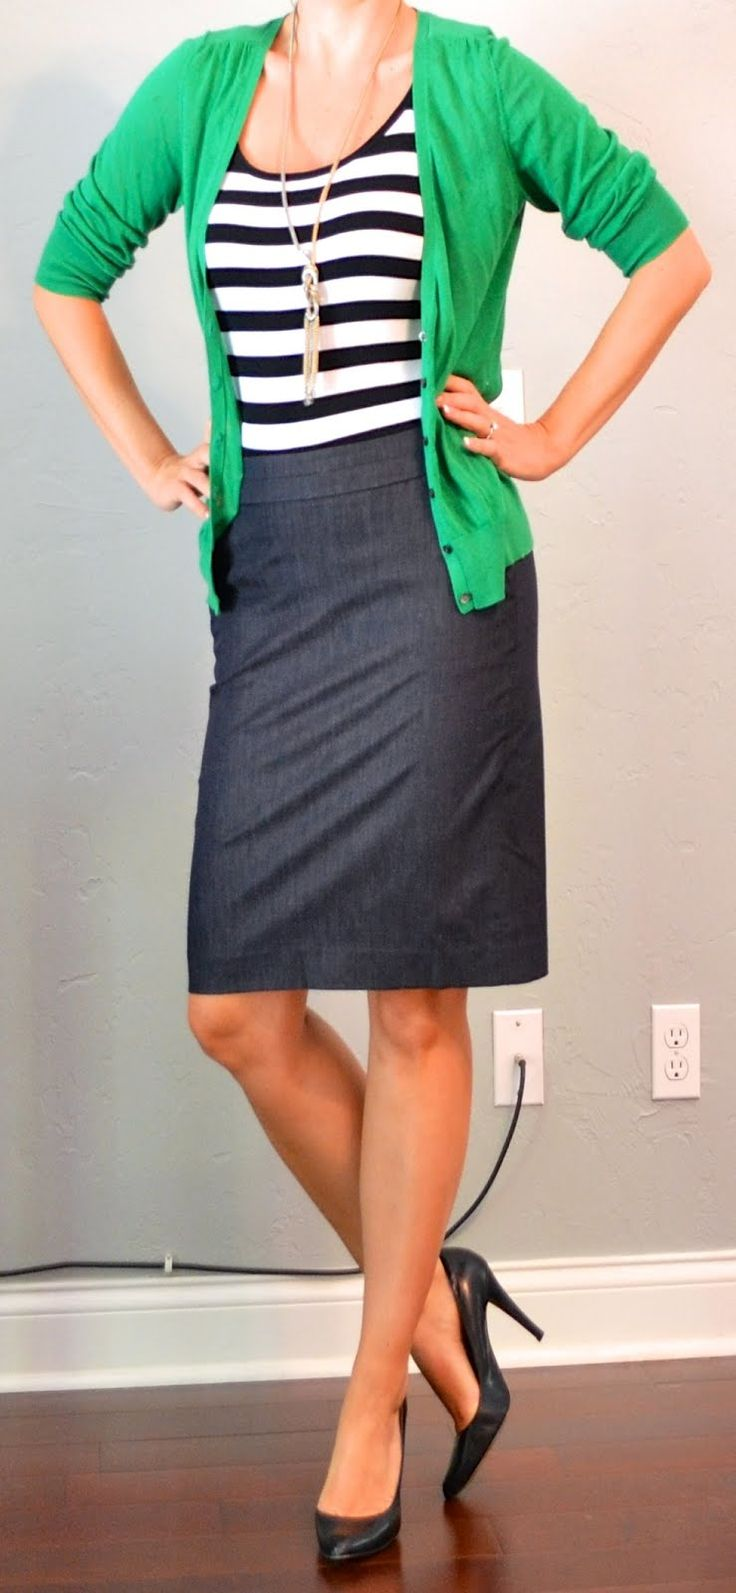 Monday-morning brights: Layer color over stripes and add an office-appropriate denim pencil skirt.Colors Combos, Outfit Post, Green Cardigans, Denim Pencil, Stripes Tanks, Kelly Green, Pencil Skirts, Work Outfits, Teachers Outfit